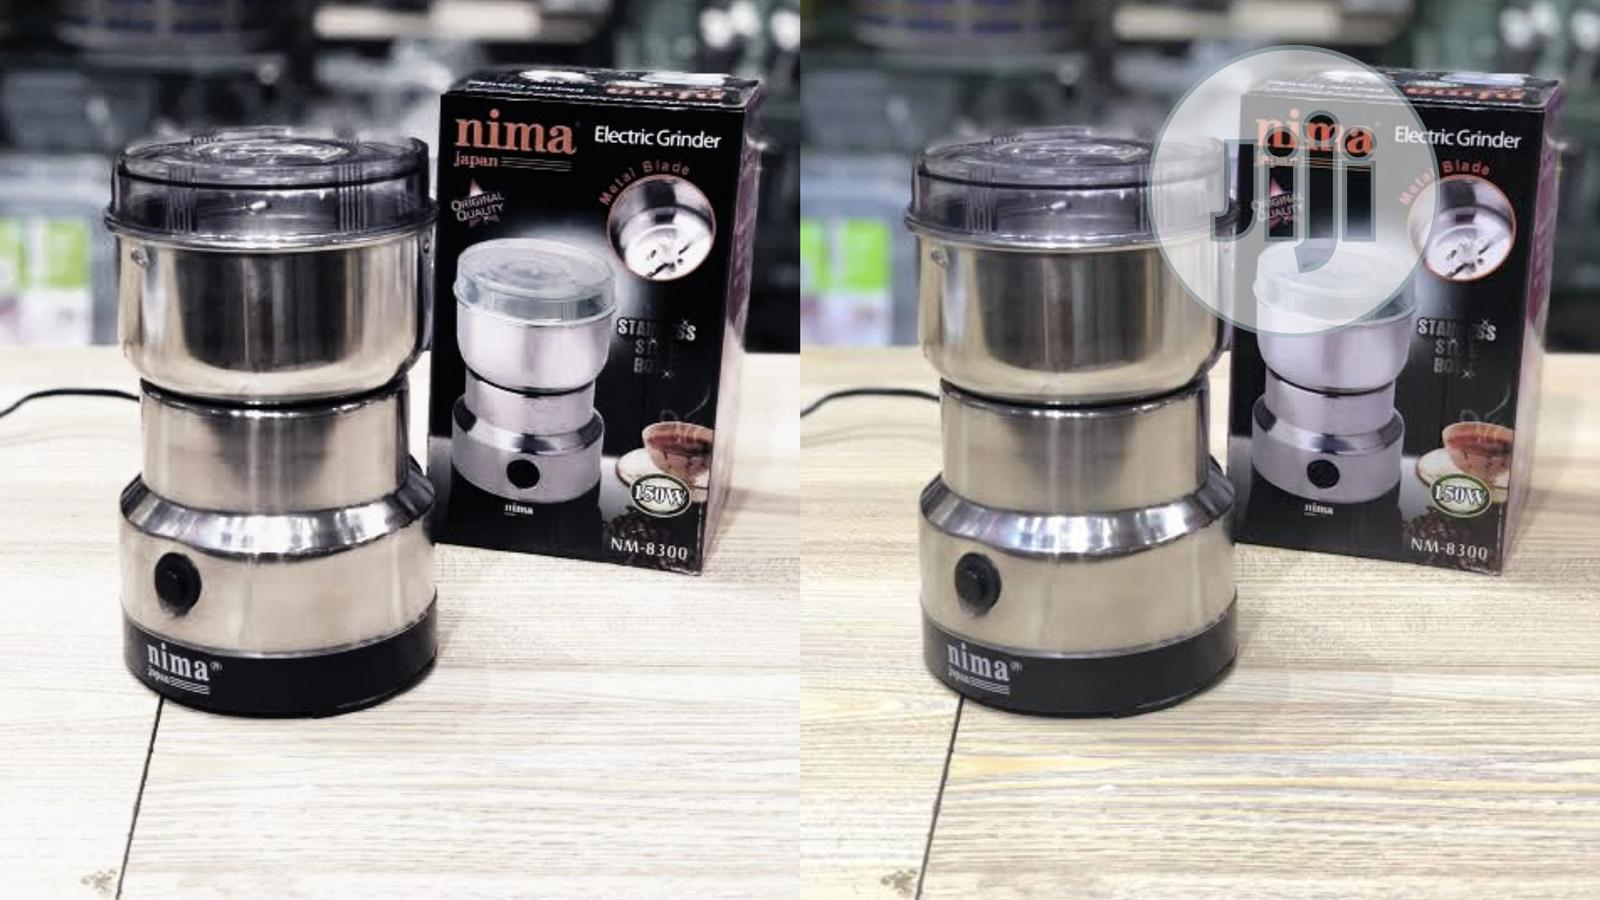 Nima Electric Portable Blender